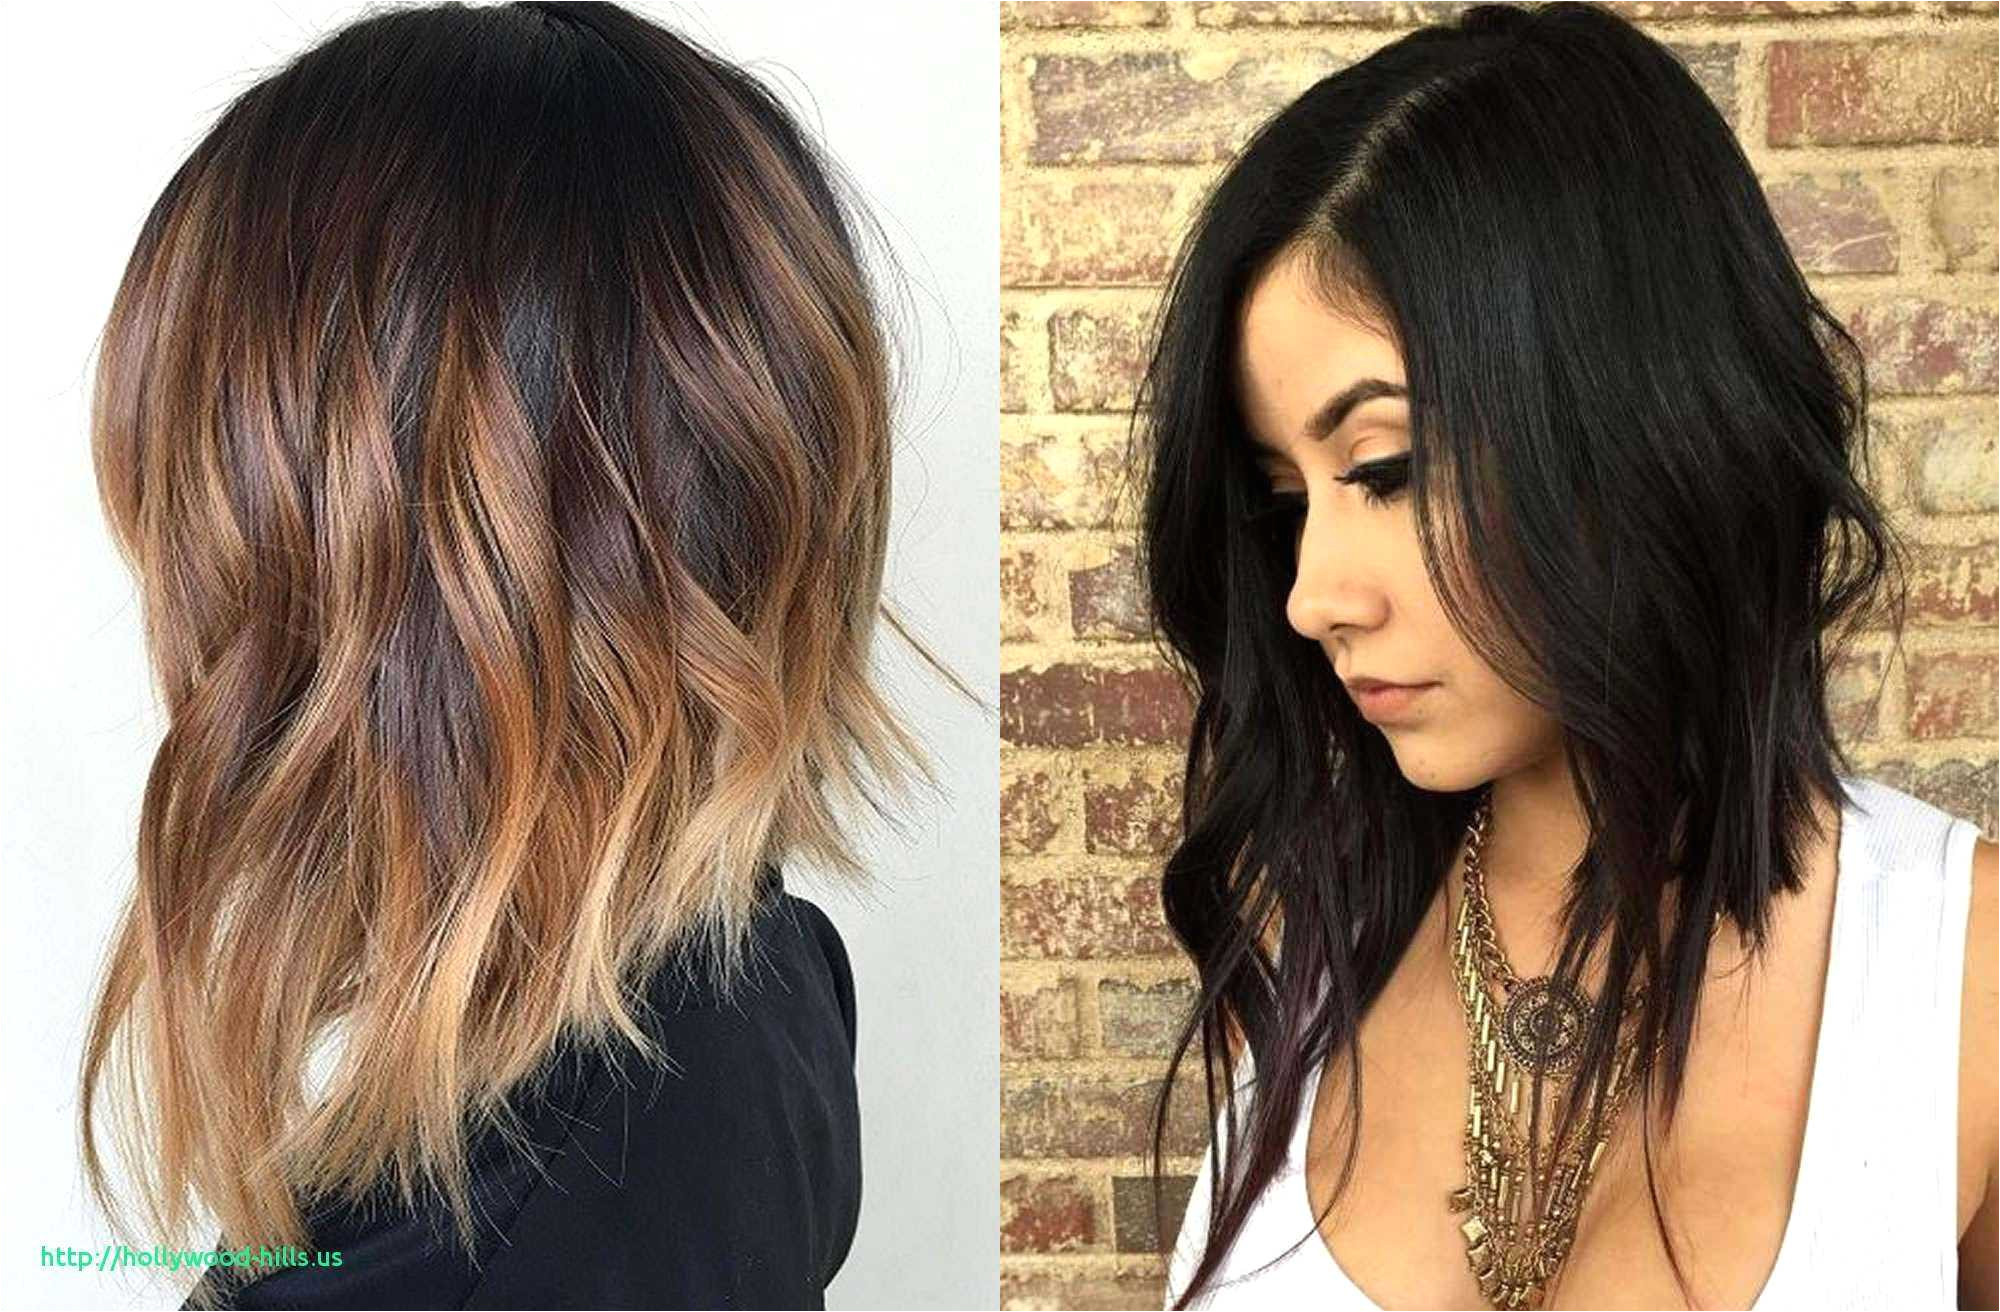 Bob Haircuts with Bangs Good Bob Hairstyles Different Colors Inspirational I Pinimg 1200x 0d 60 40 Showiest Decorating Bob Hairstyle Black